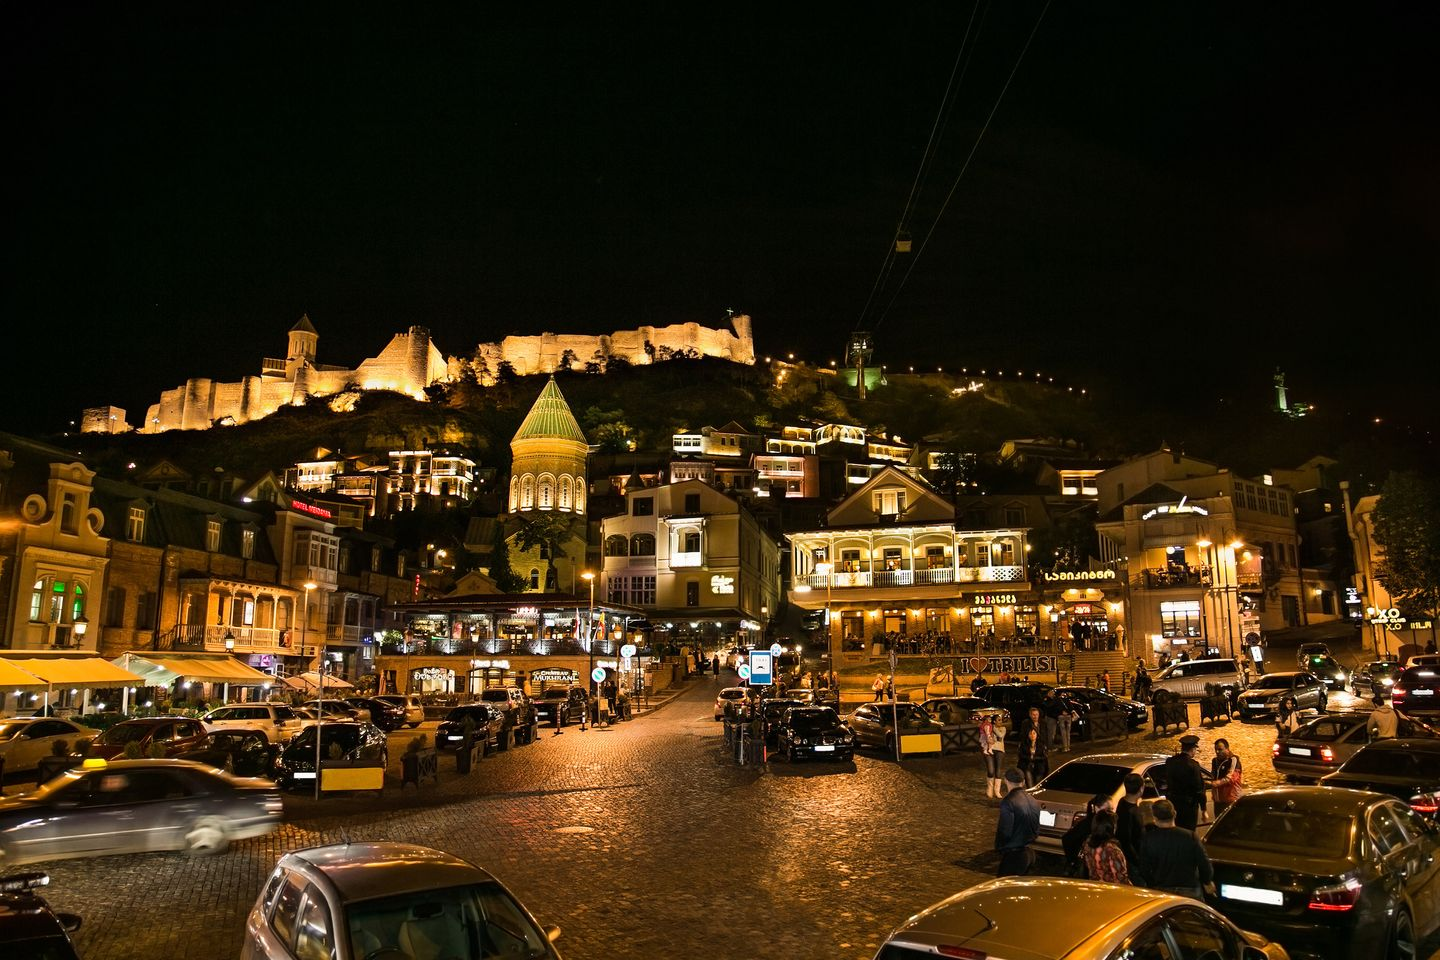 Tbilisi comes to life at night (Shutterstock)